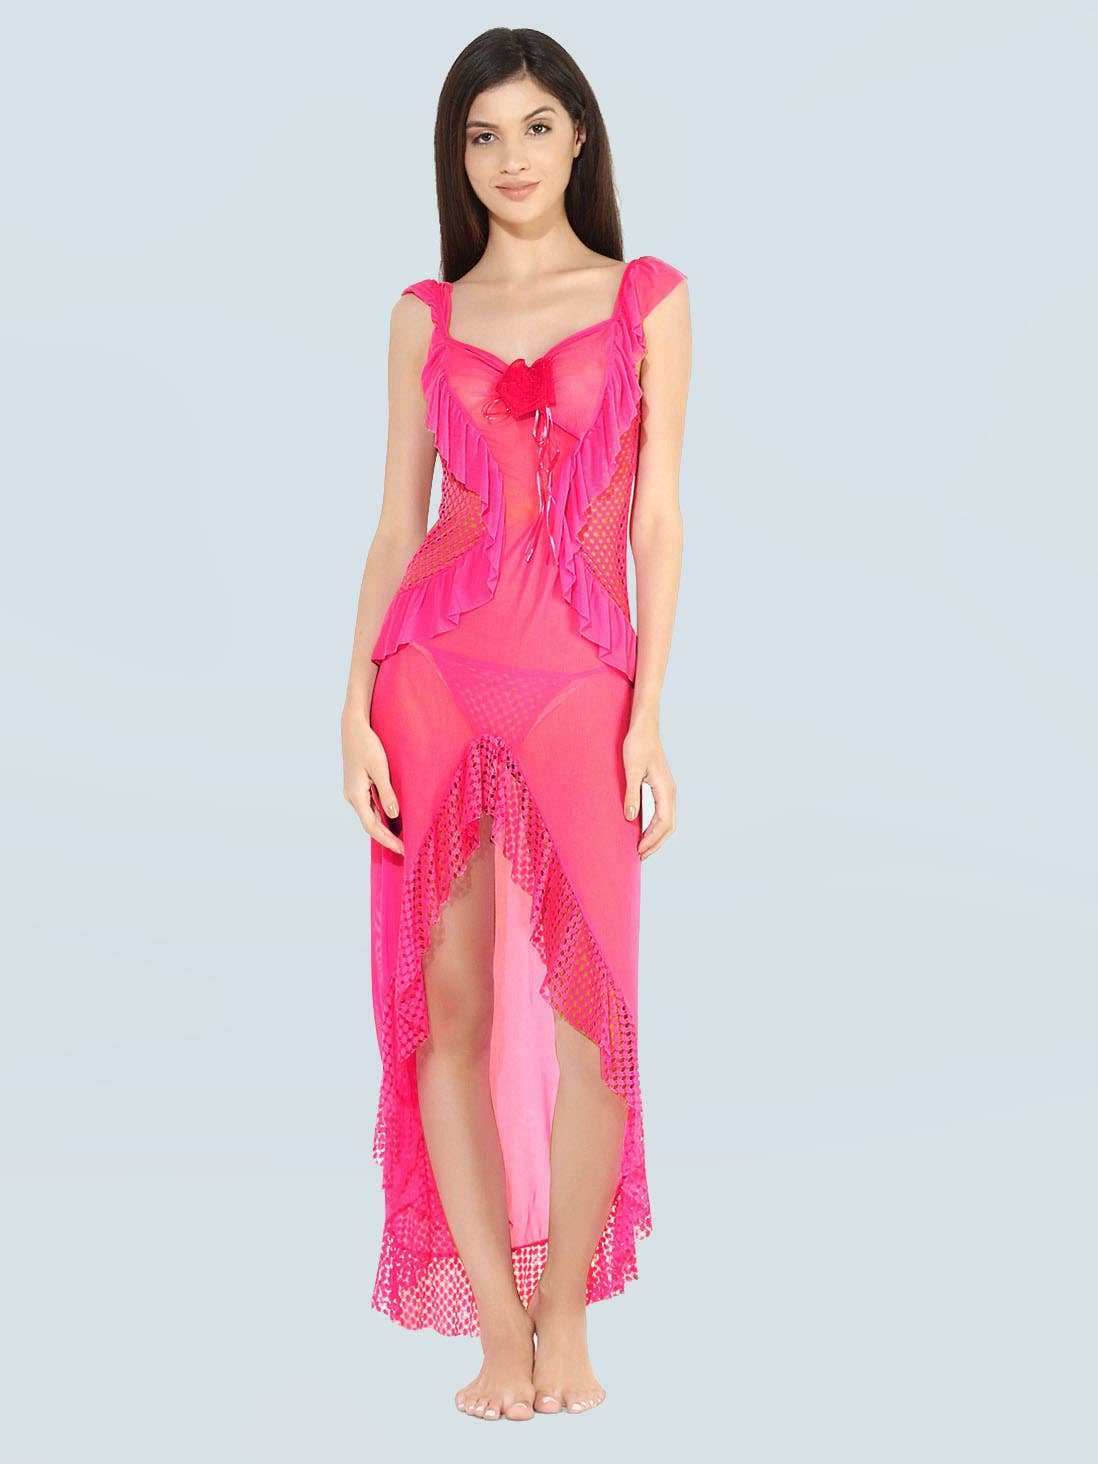 shyle-neon-pink-mesh-with-net-and-frills-attached-babydoll